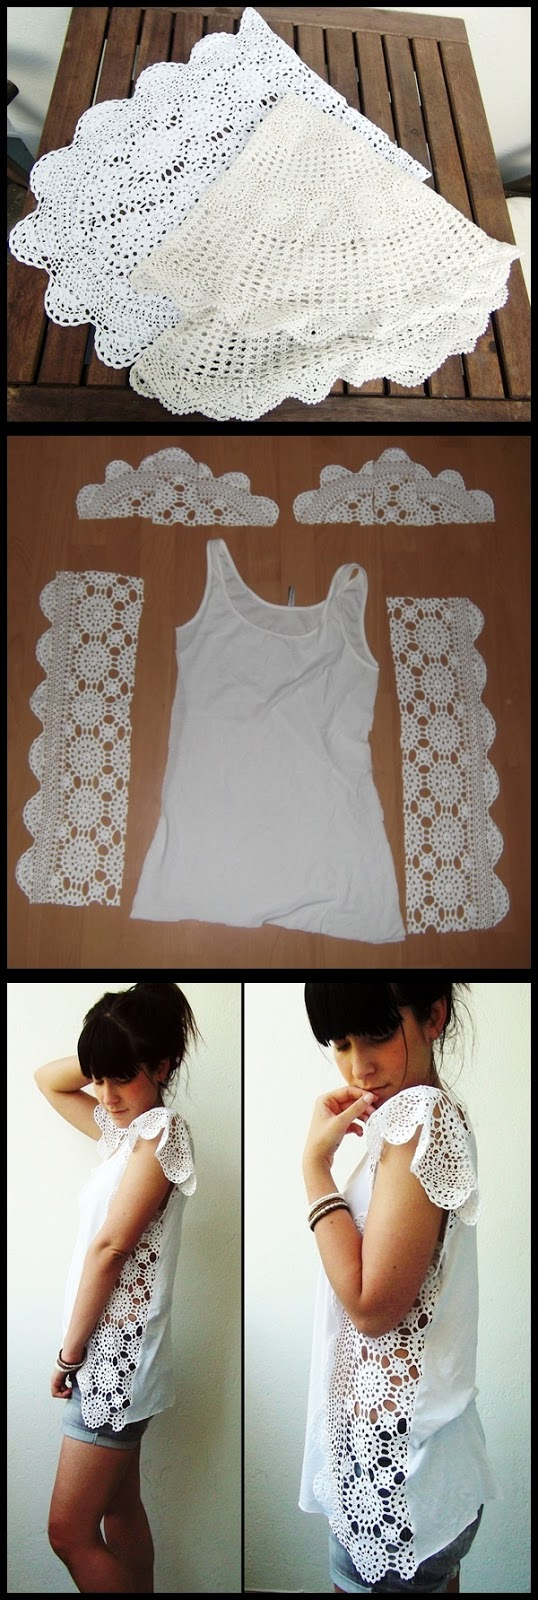 customizar una camiseta con croche